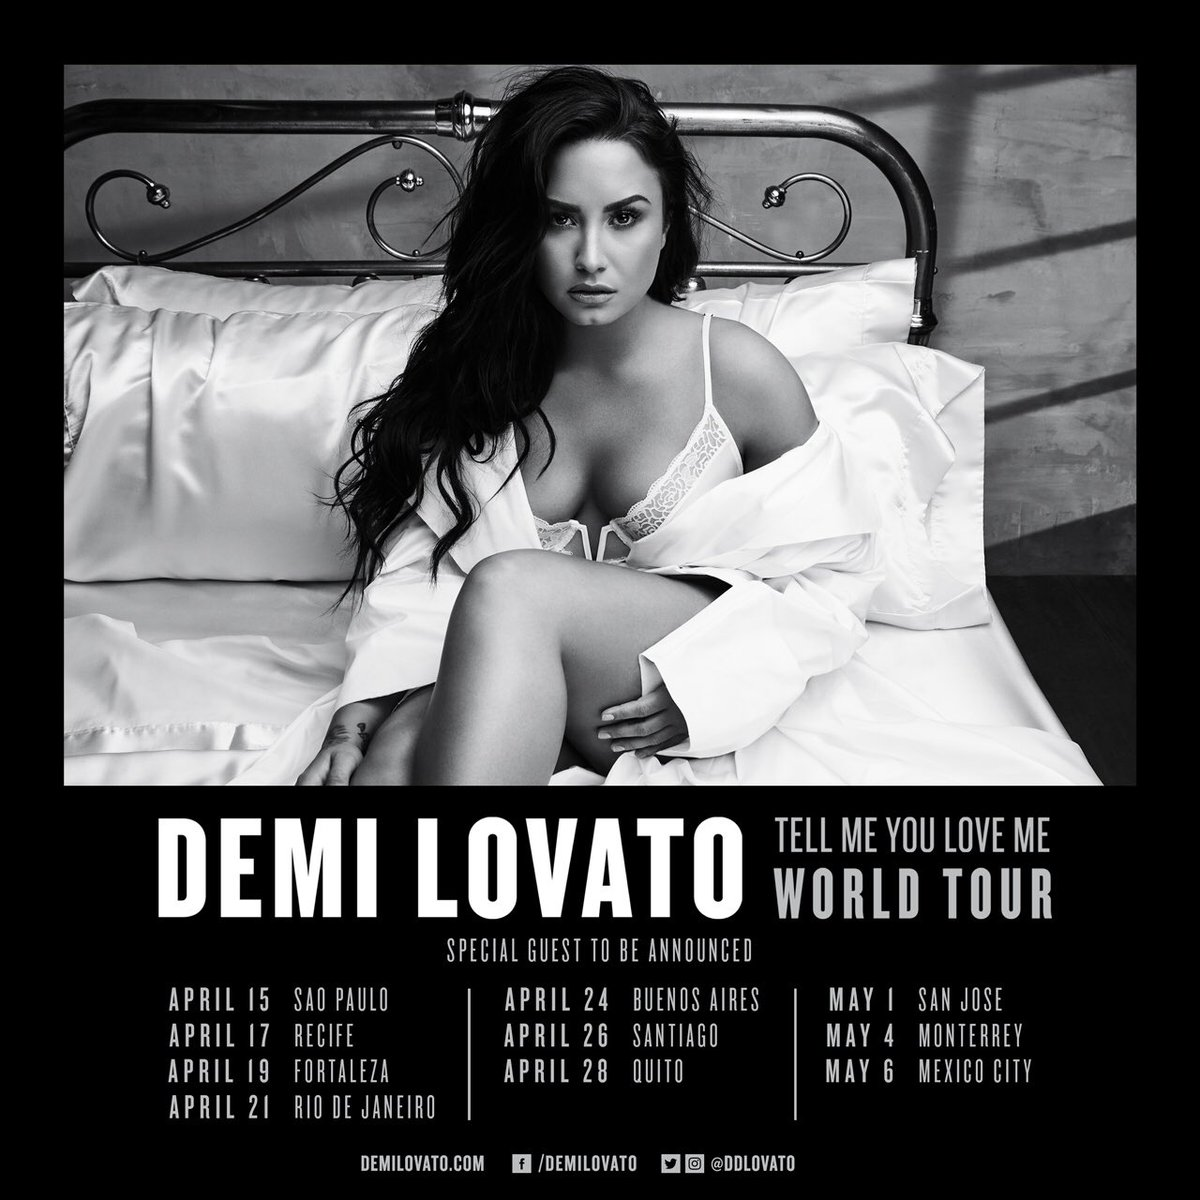 Brazil and Chile!! Tickets for the #TellMeYouLoveMeTour are on sale now 🔥🔥🔥 https://t.co/FdRYQe0I9Y